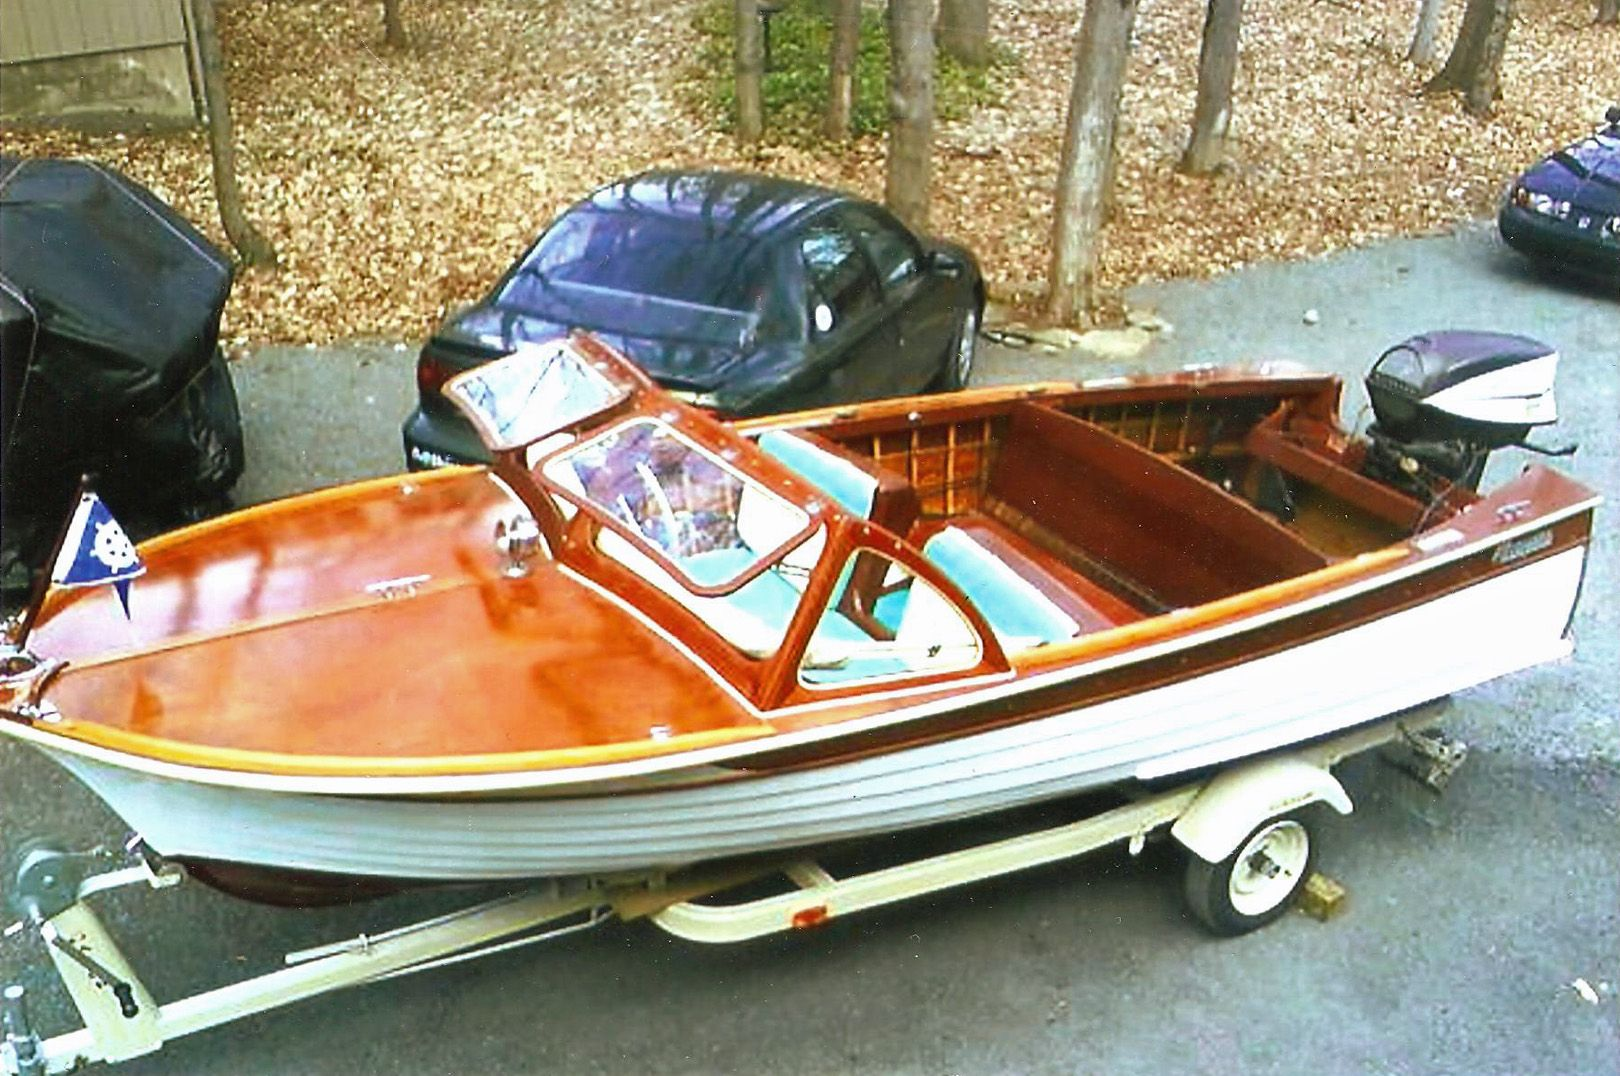 Pin By David Tanner On Runabout Boat Classic Wooden Boats Wood Boats Runabout Boat